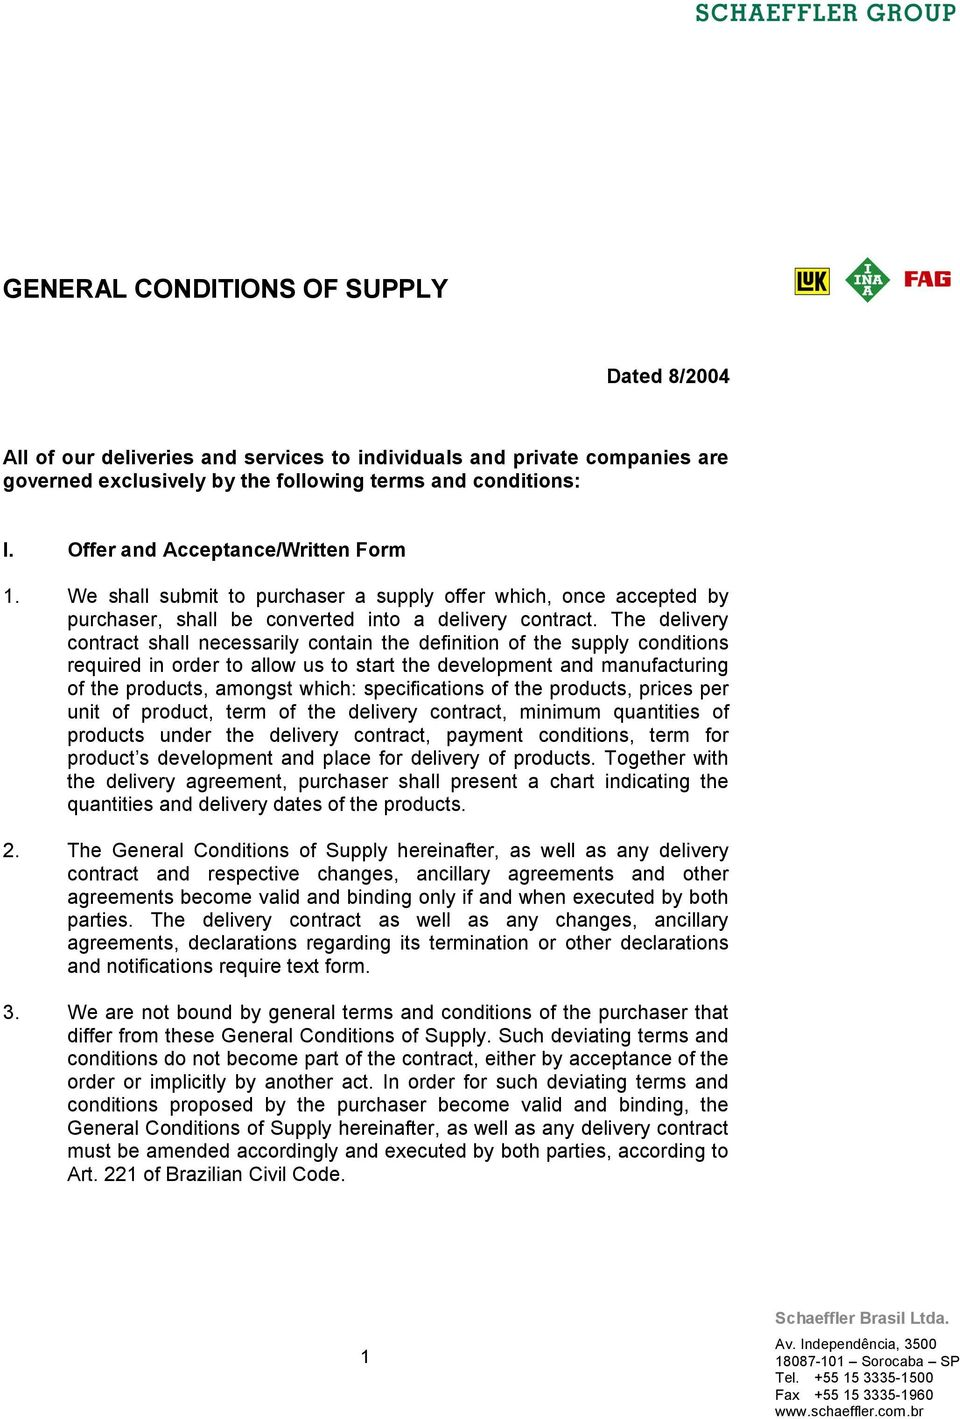 The delivery contract shall necessarily contain the definition of the supply conditions required in order to allow us to start the development and manufacturing of the products, amongst which: